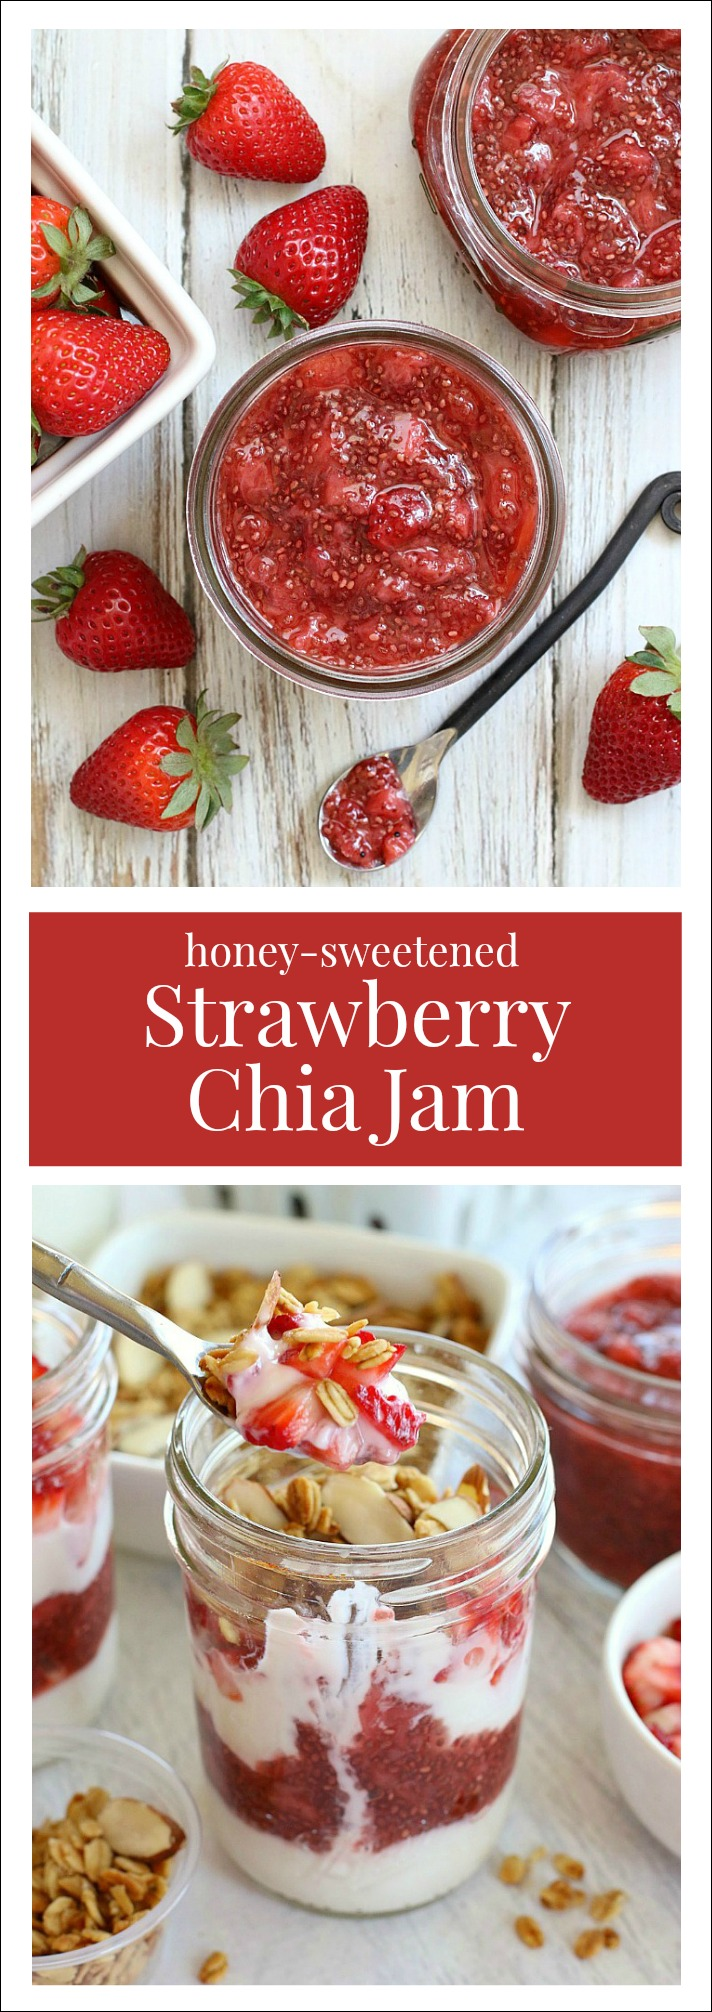 Strawberry Chia Jam! With 5 wholesome ingredients and just 15 minutes time, you can create a healthier fruit spread full of fresh strawberry flavor!